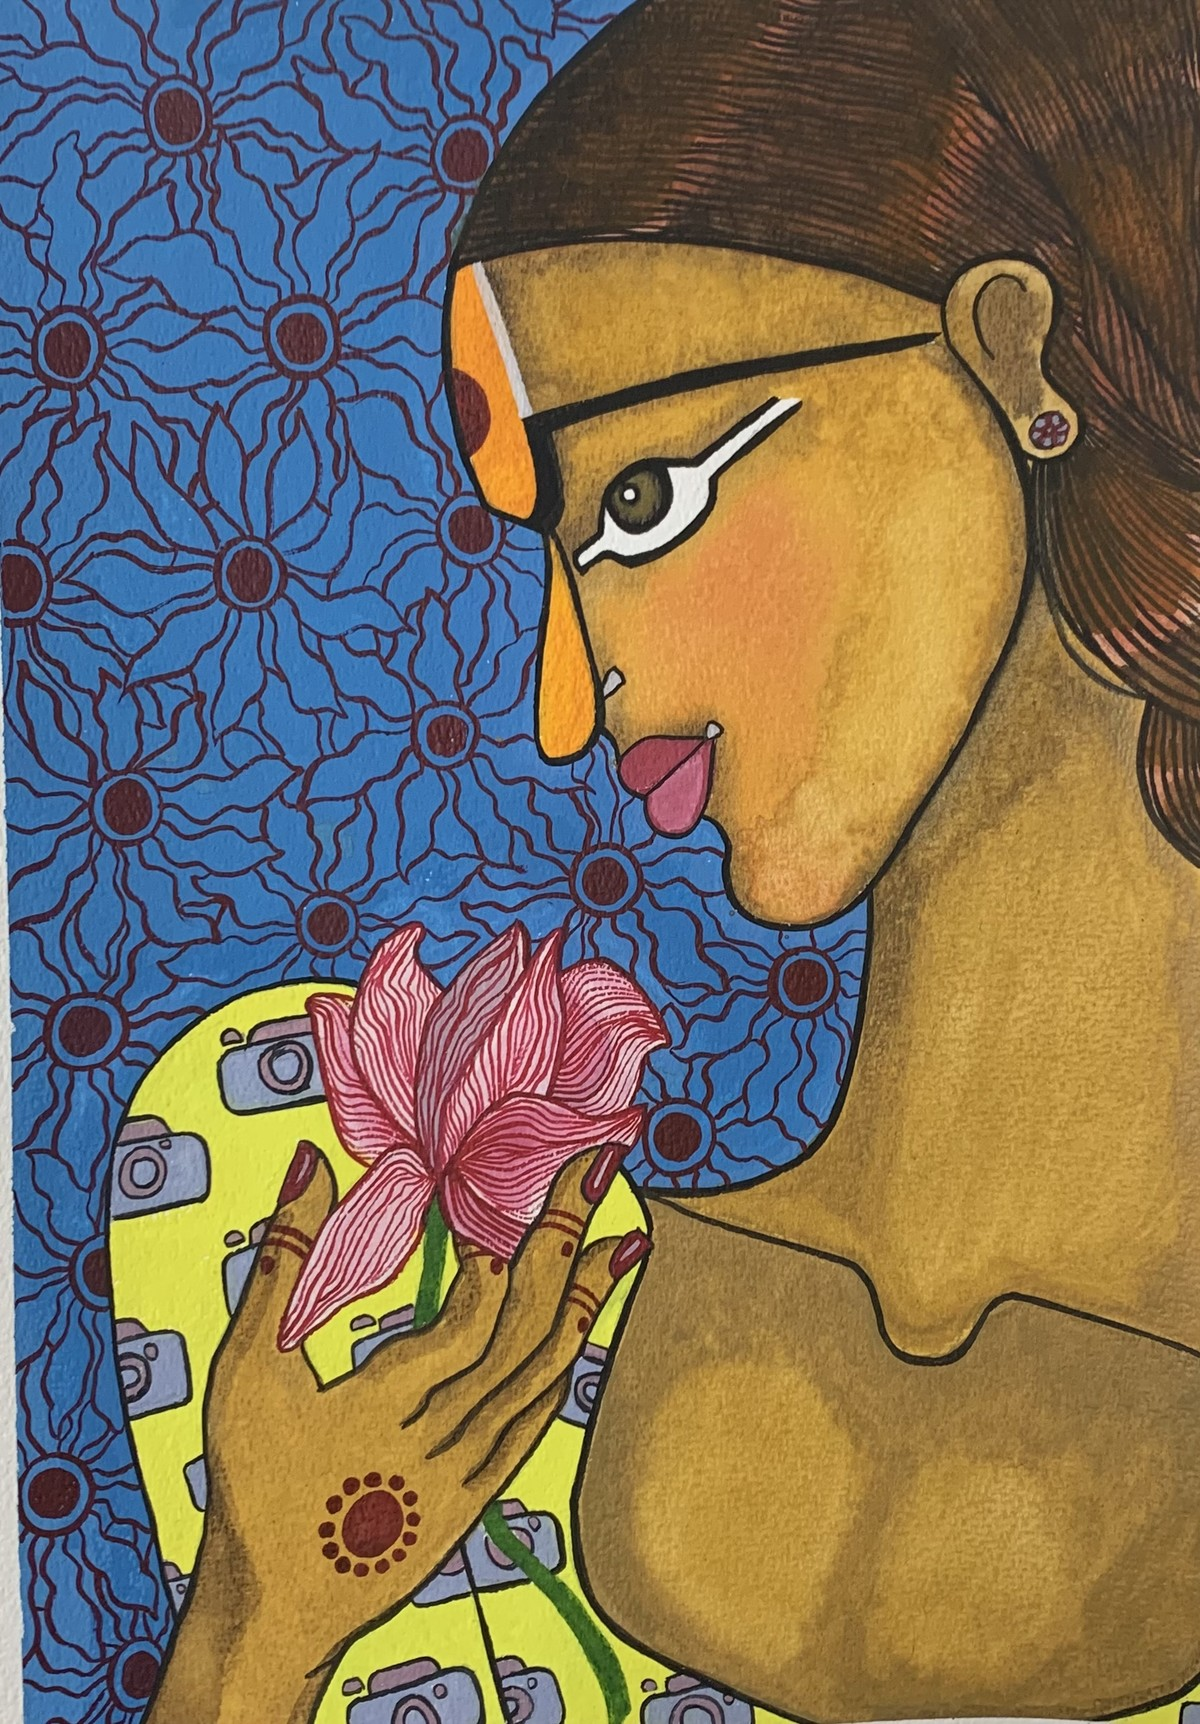 Girl with flower by Parul Aggarwal, Decorative Painting, Watercolor on Paper, Sundance color